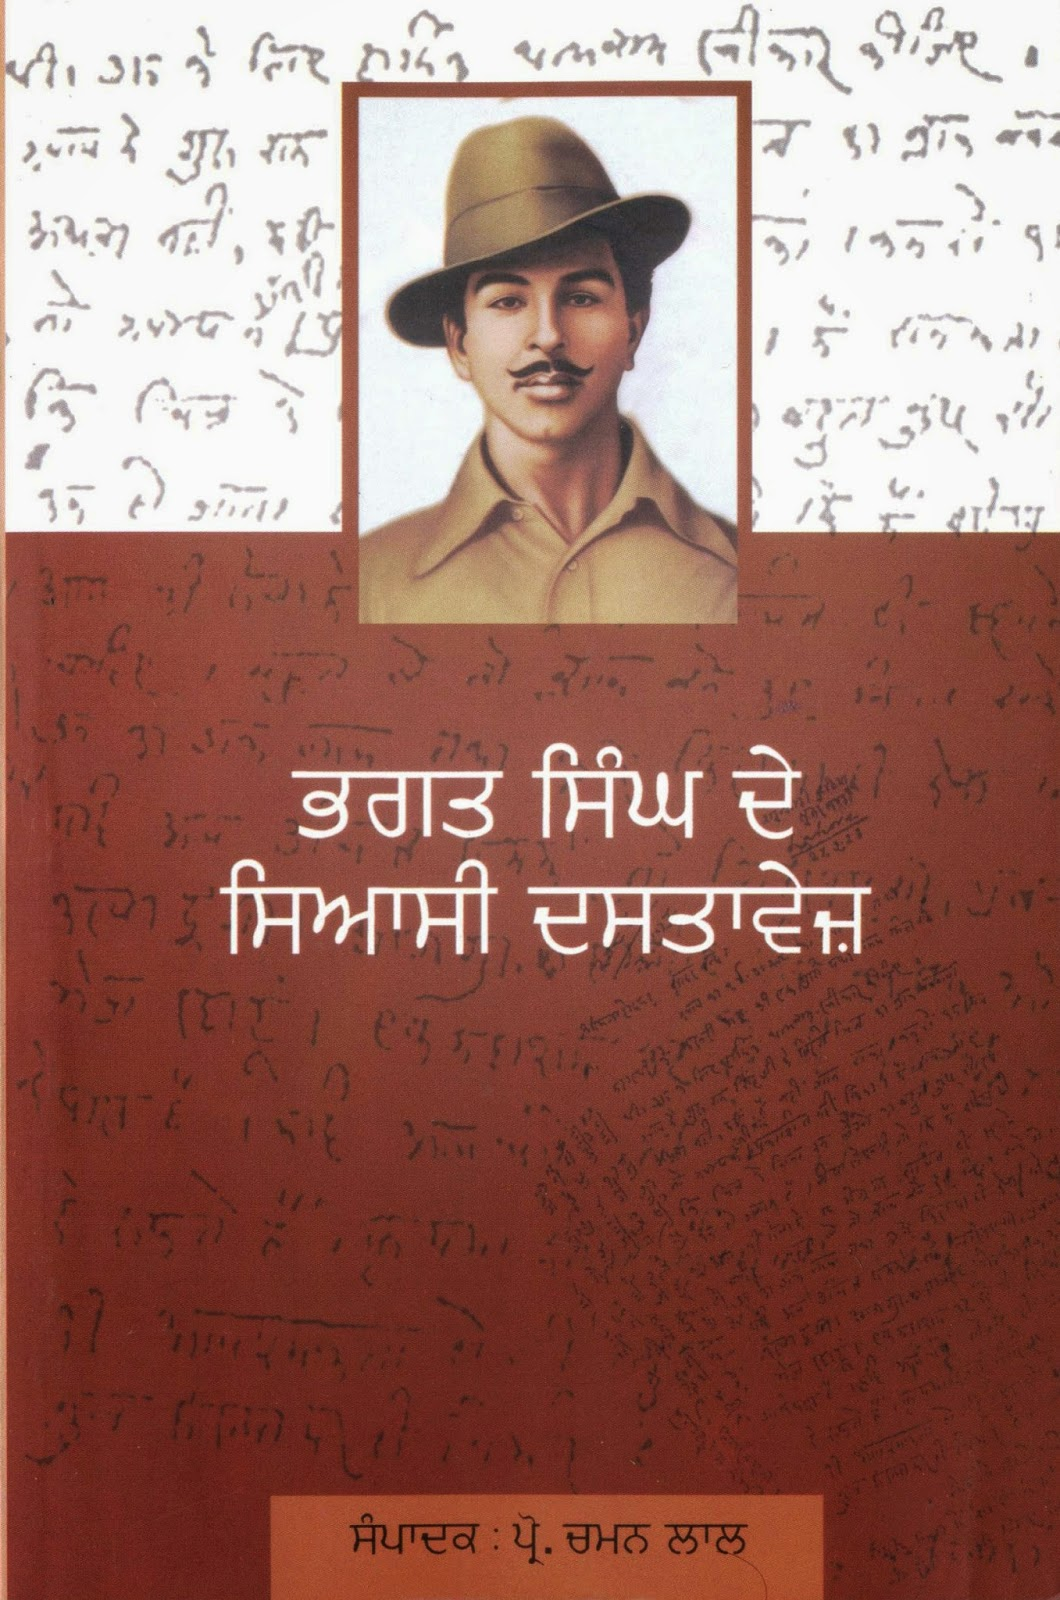 bhagat singh study chaman lal my books on bhagat singh and complete list of my books on bhagat singh and other revolutionaries whose titles are given here